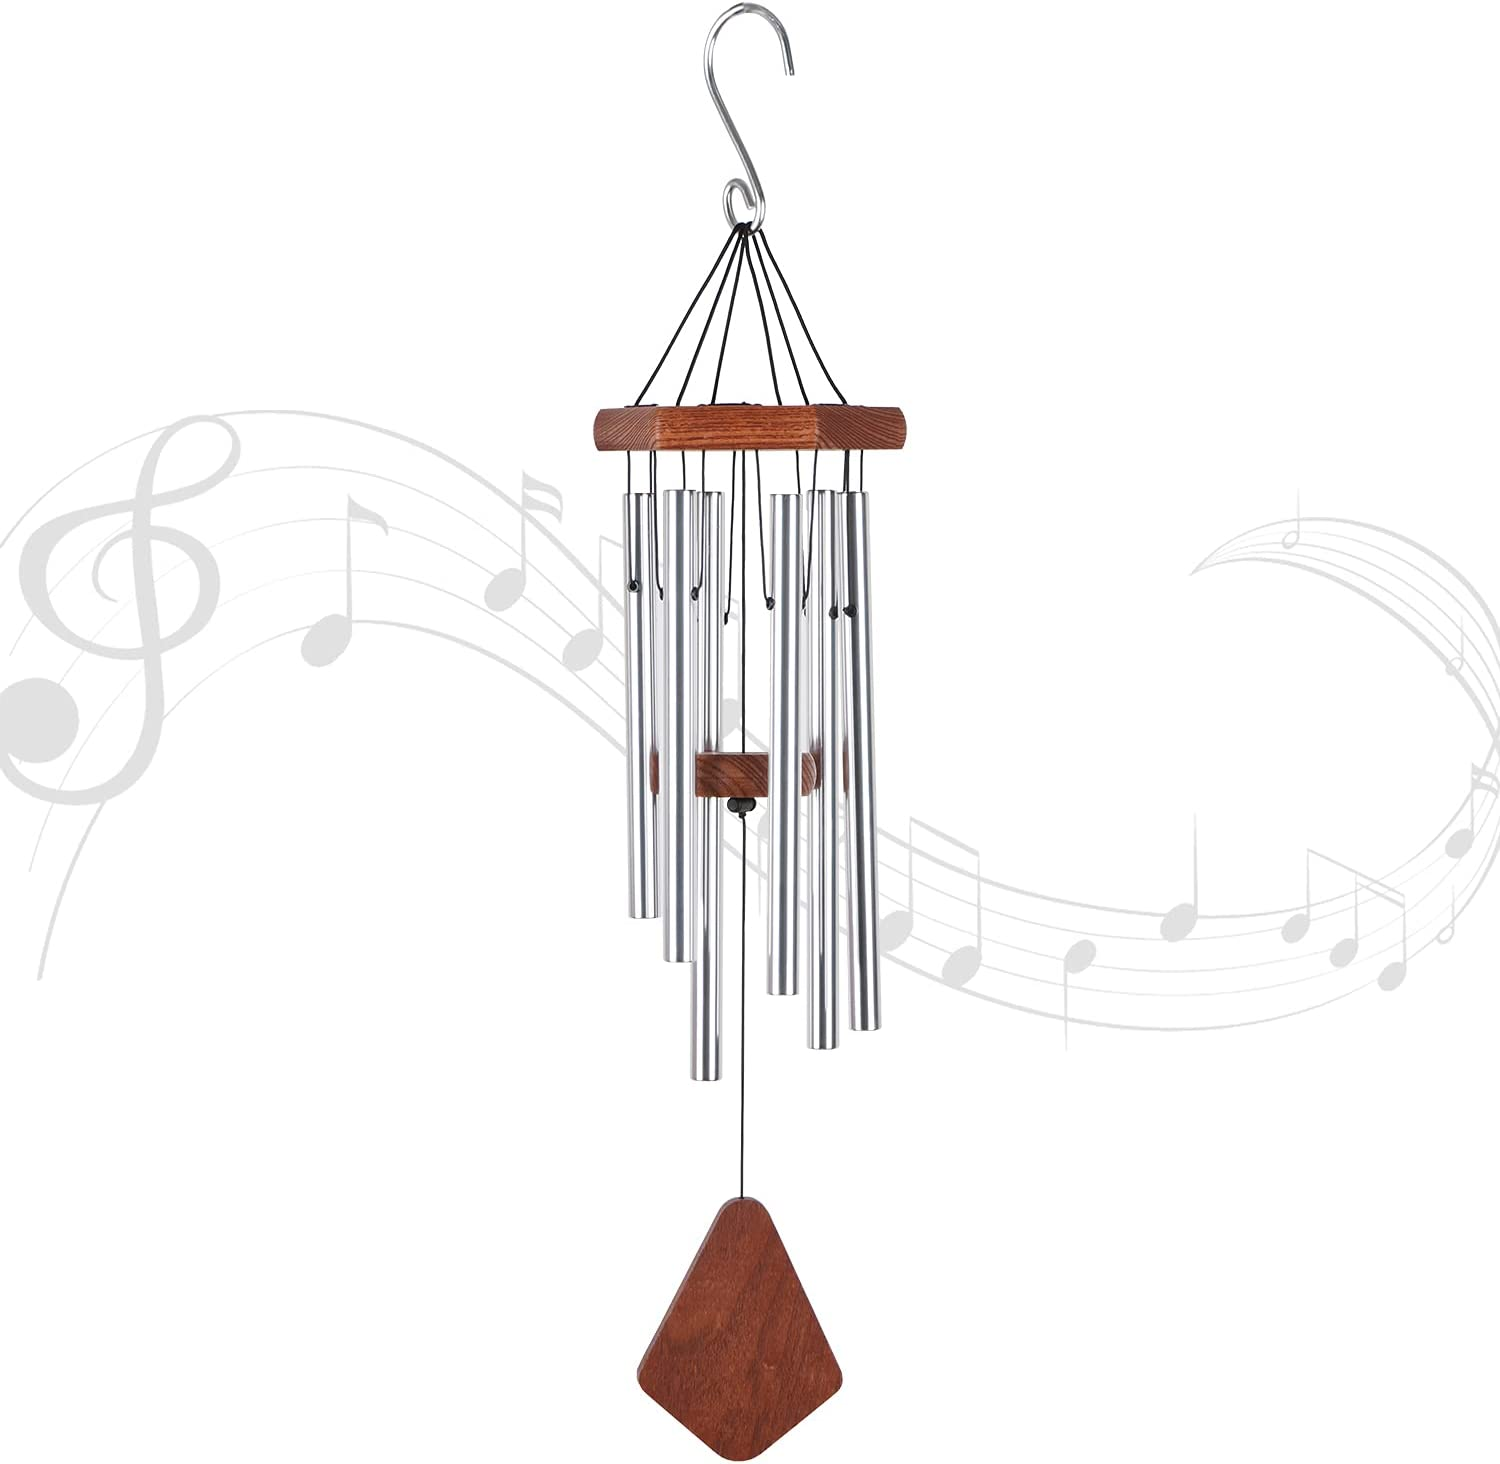 Voltogar Grande Tunes 2021 spring and summer new online shopping Wind Chimes for T 6 Windchime with Outside